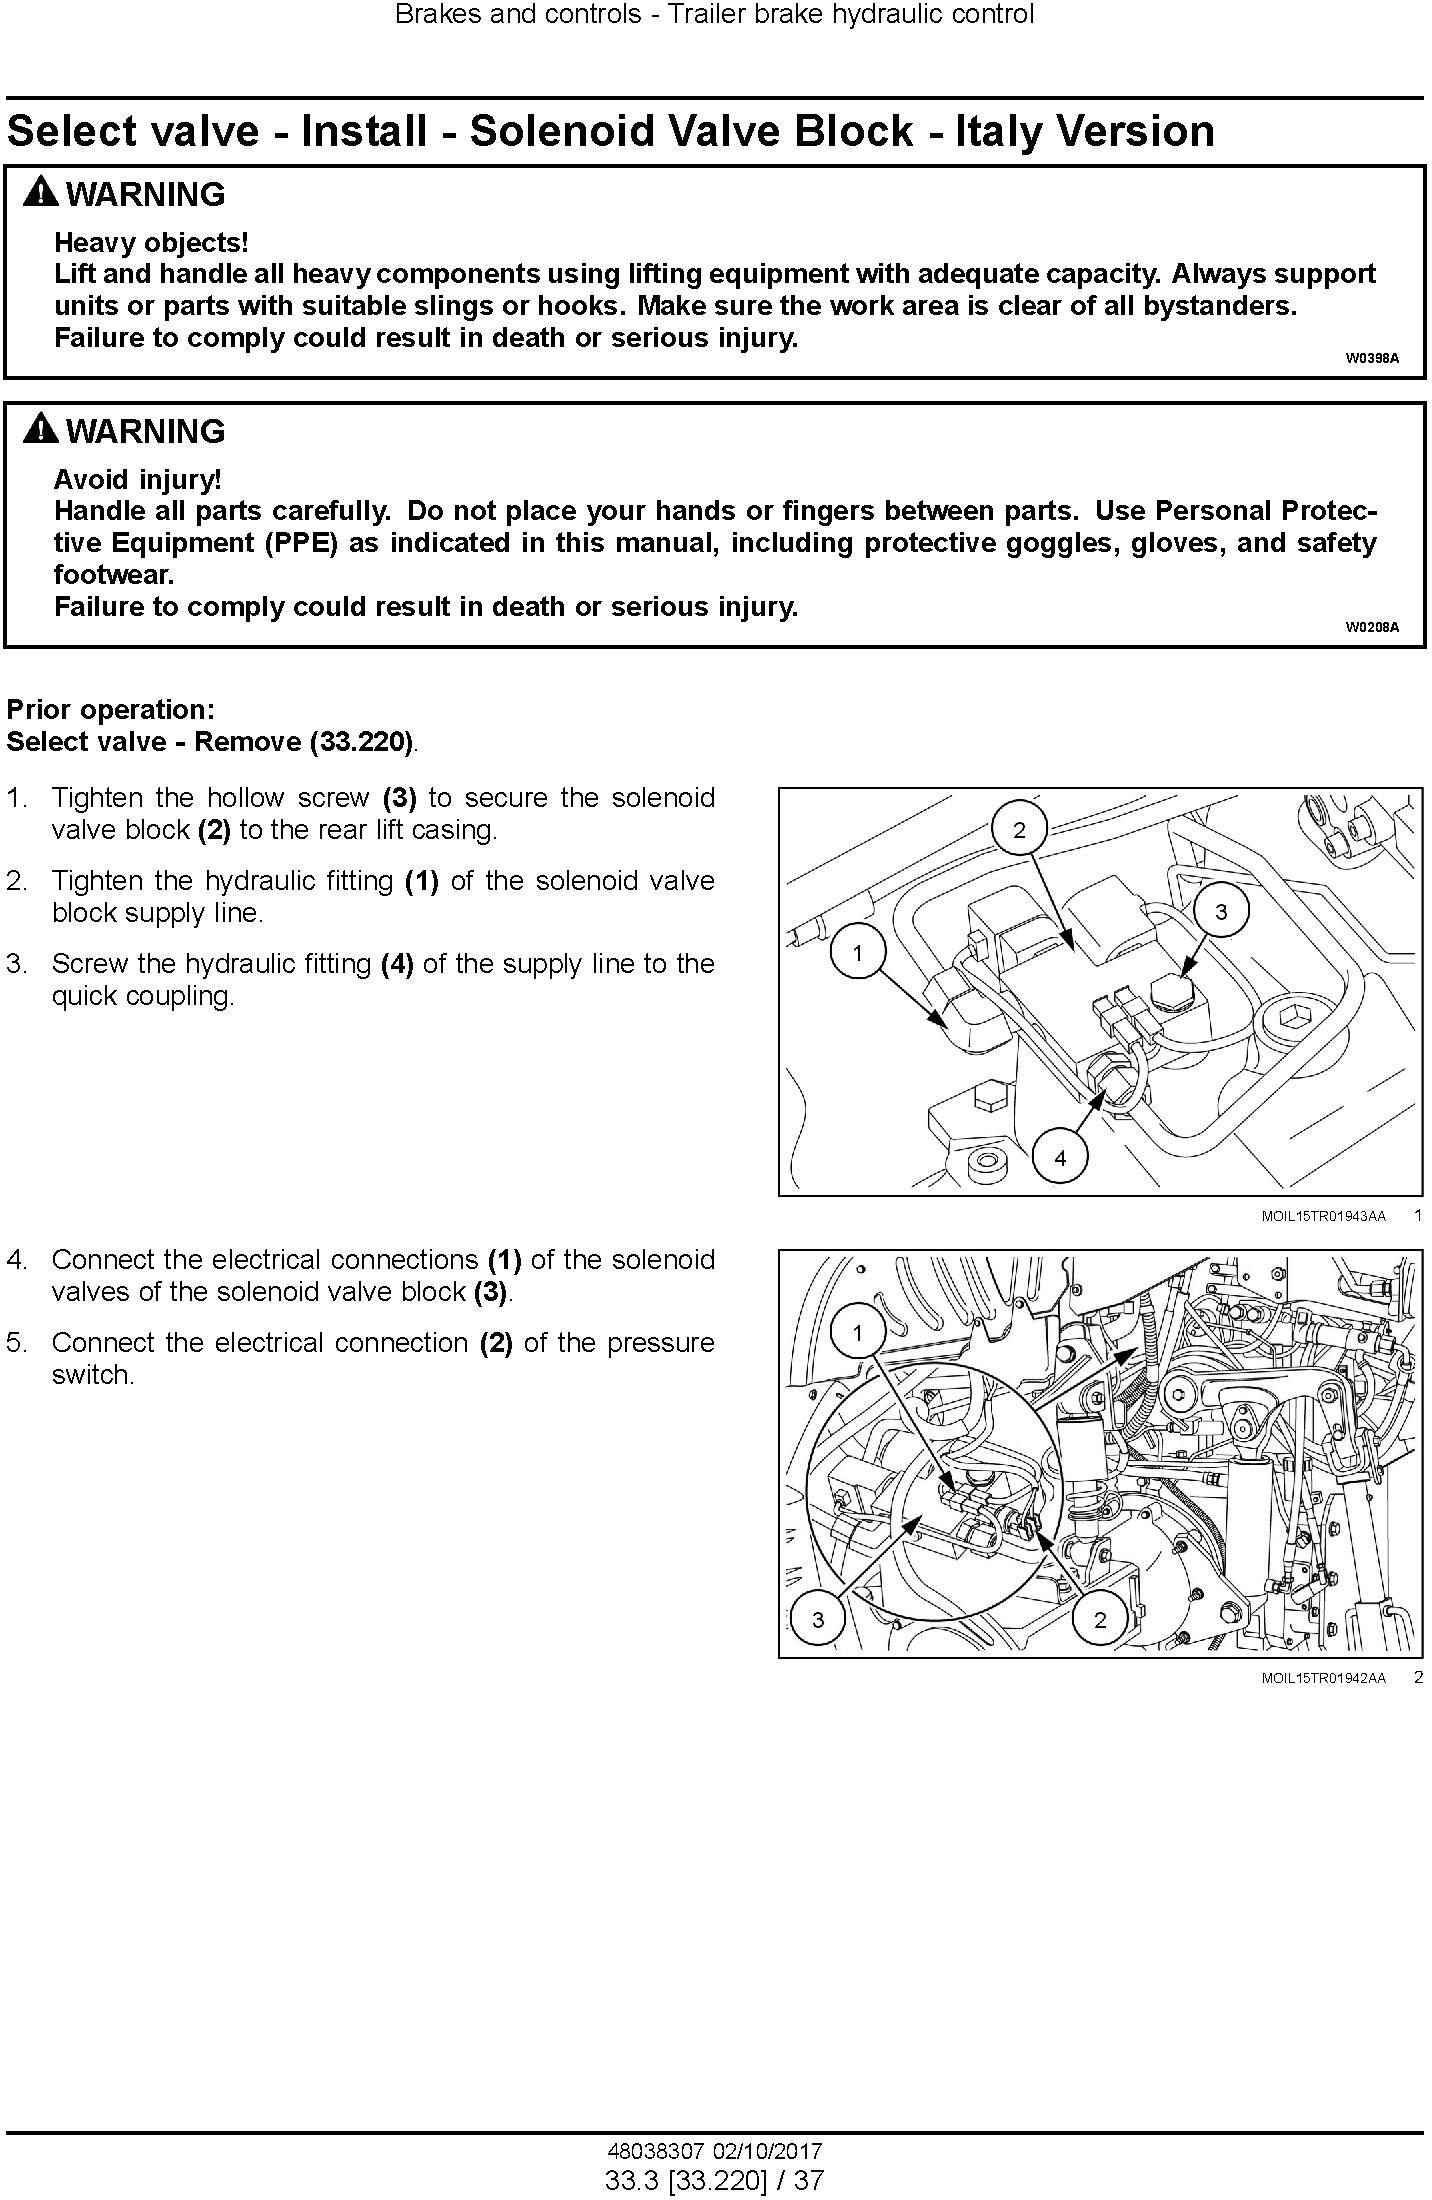 New Holland T5.100, T5.110, T5.120 Electro Command Stage IV Tractor Service Manual - 2